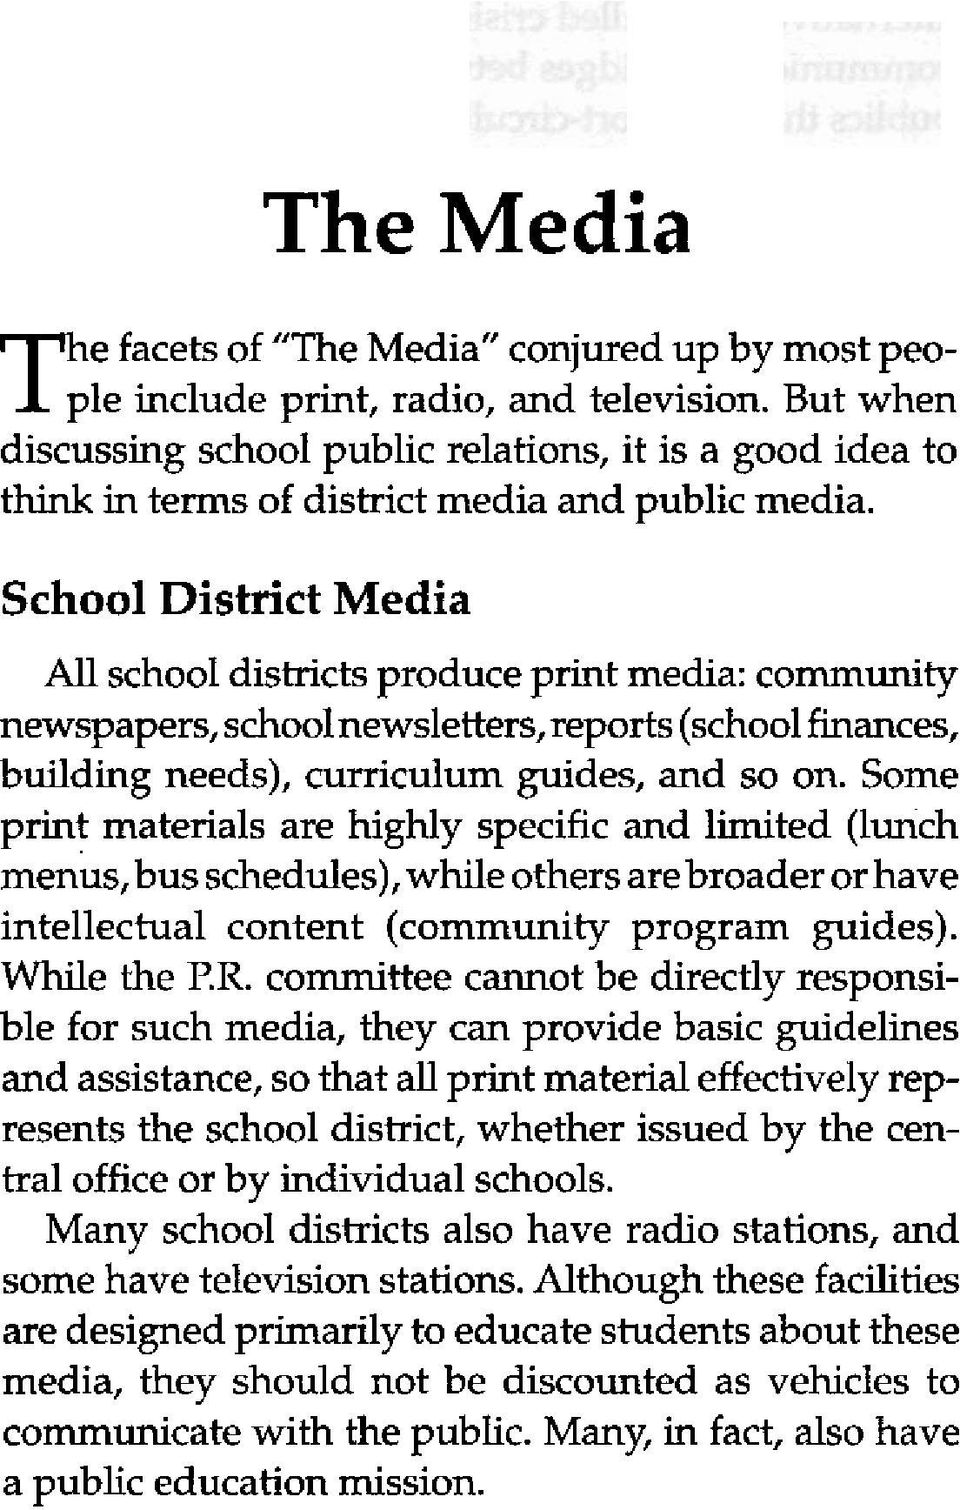 School District Media All school districts produce print media: community newspapers, schoolnewsletters,reports (school finances, building needs), curriculum guides, and so on.